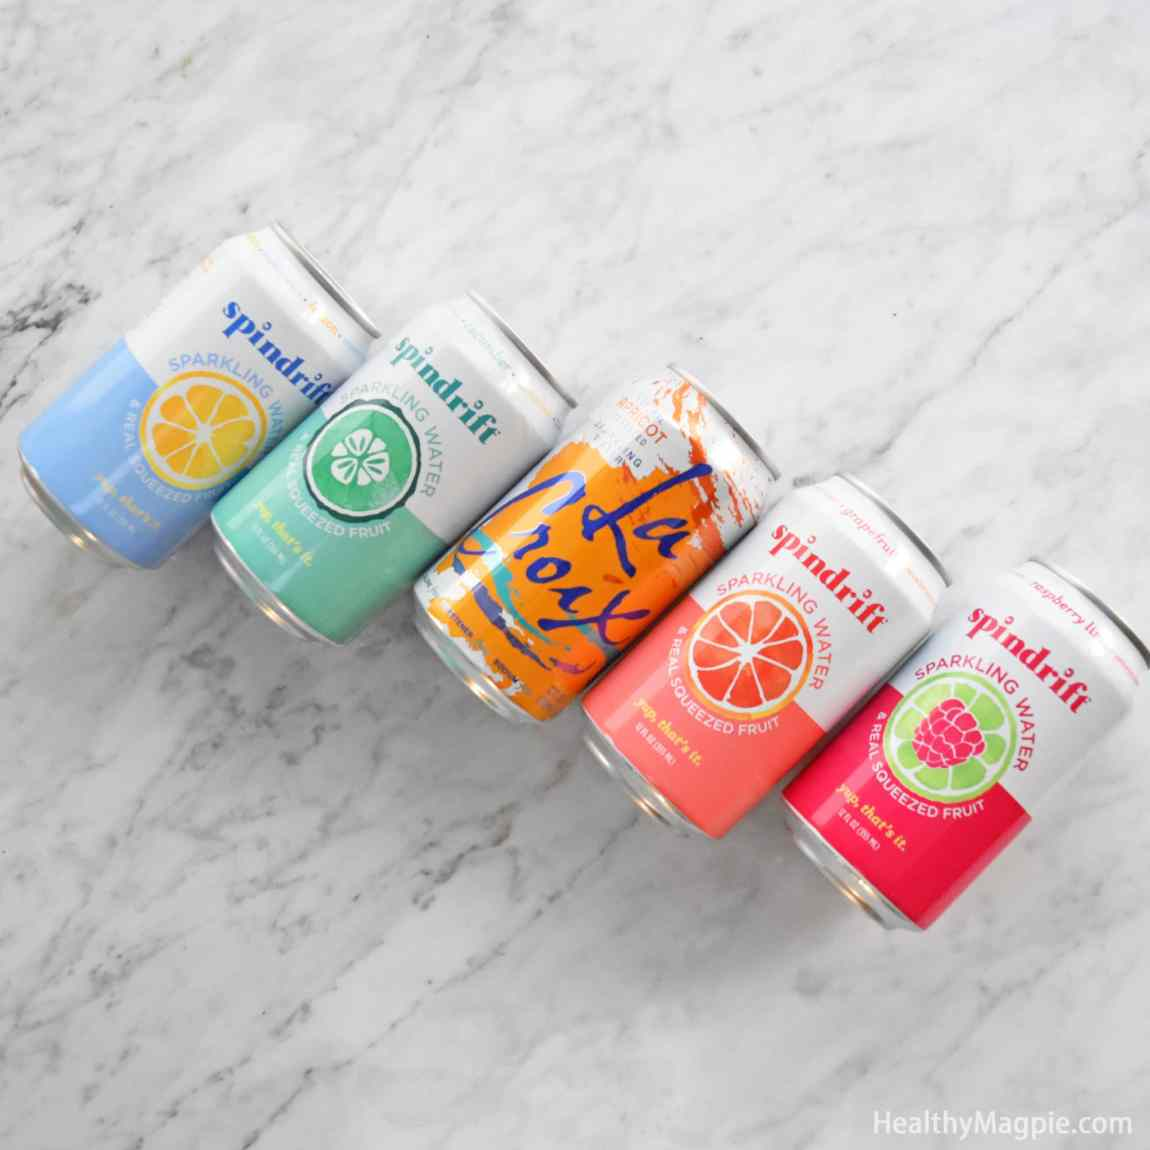 Pictures and reviews of Spindrift seltzer and La Croix sparkling water in Apricot